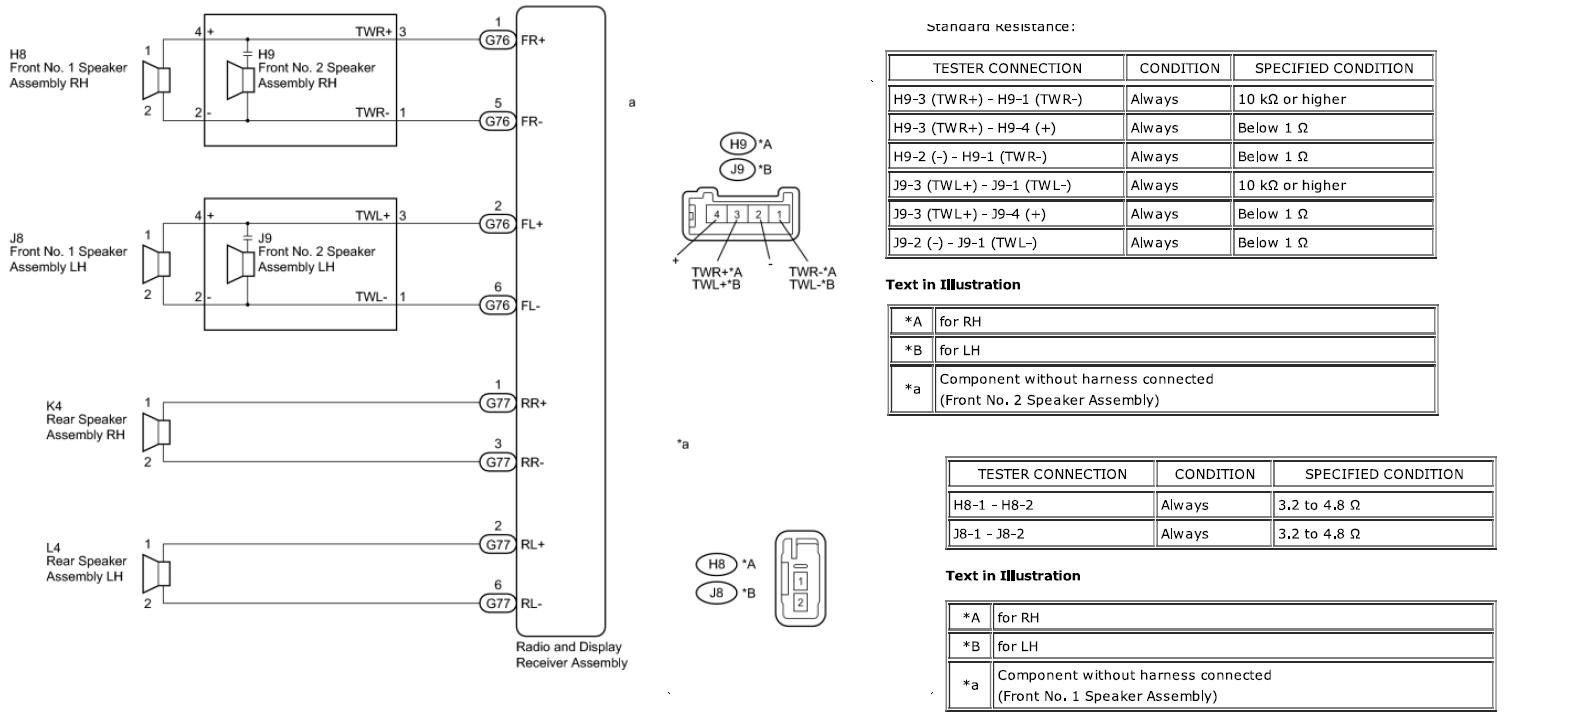 pioneer deh p4000ub wiring diagram efcaviation com pioneer fh-x700bt wiring harness at bayanpartner.co